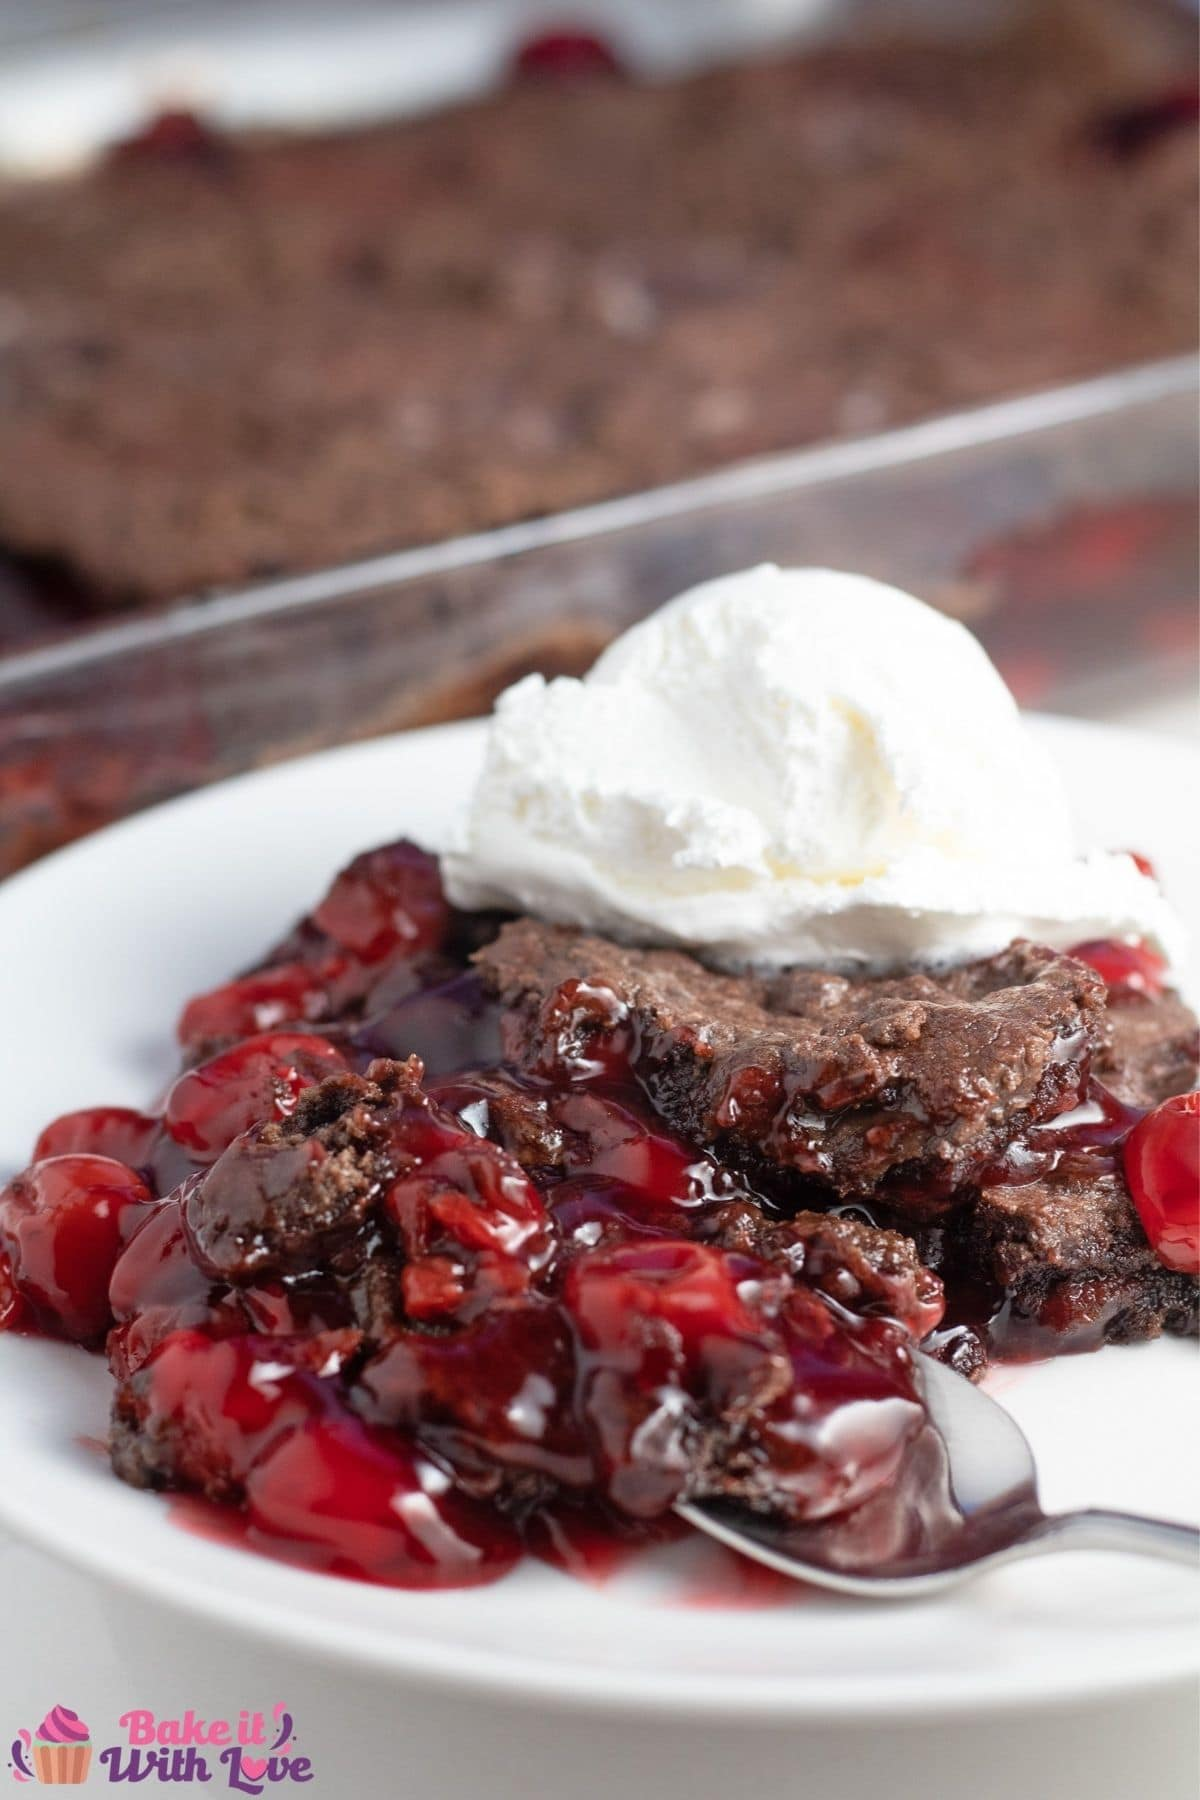 Tall image of the chocolate cherry dump cake served on plate with the baking dish in background.